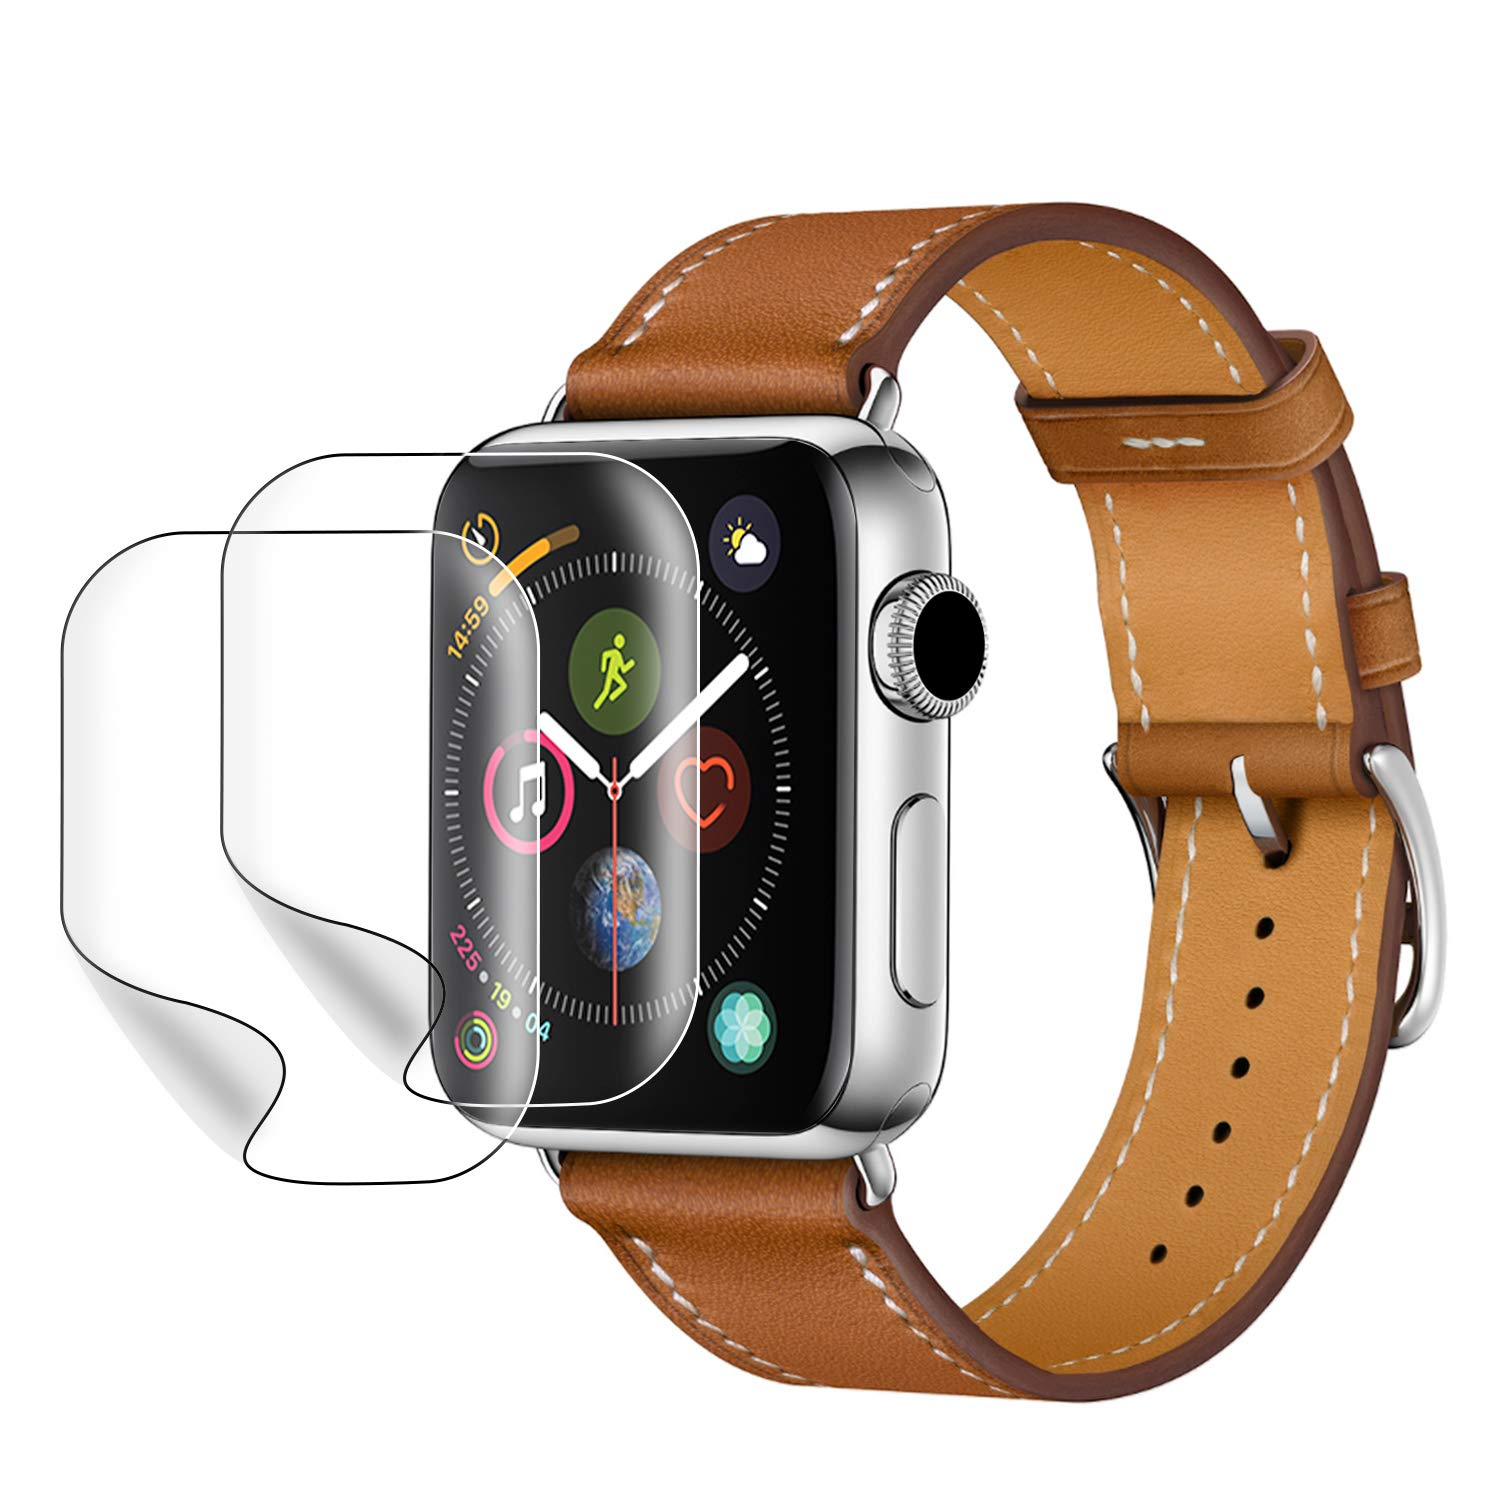 PEYOU Compatible for iWatch Series 4 leather Band 40mm,【2 Pack Screen Protectors for Free】 Top Genuine Leather Band Vintage Replacement Strap Compatible for Apple Watch Series 4 40mm series 3/2/1 38mm by Peyou